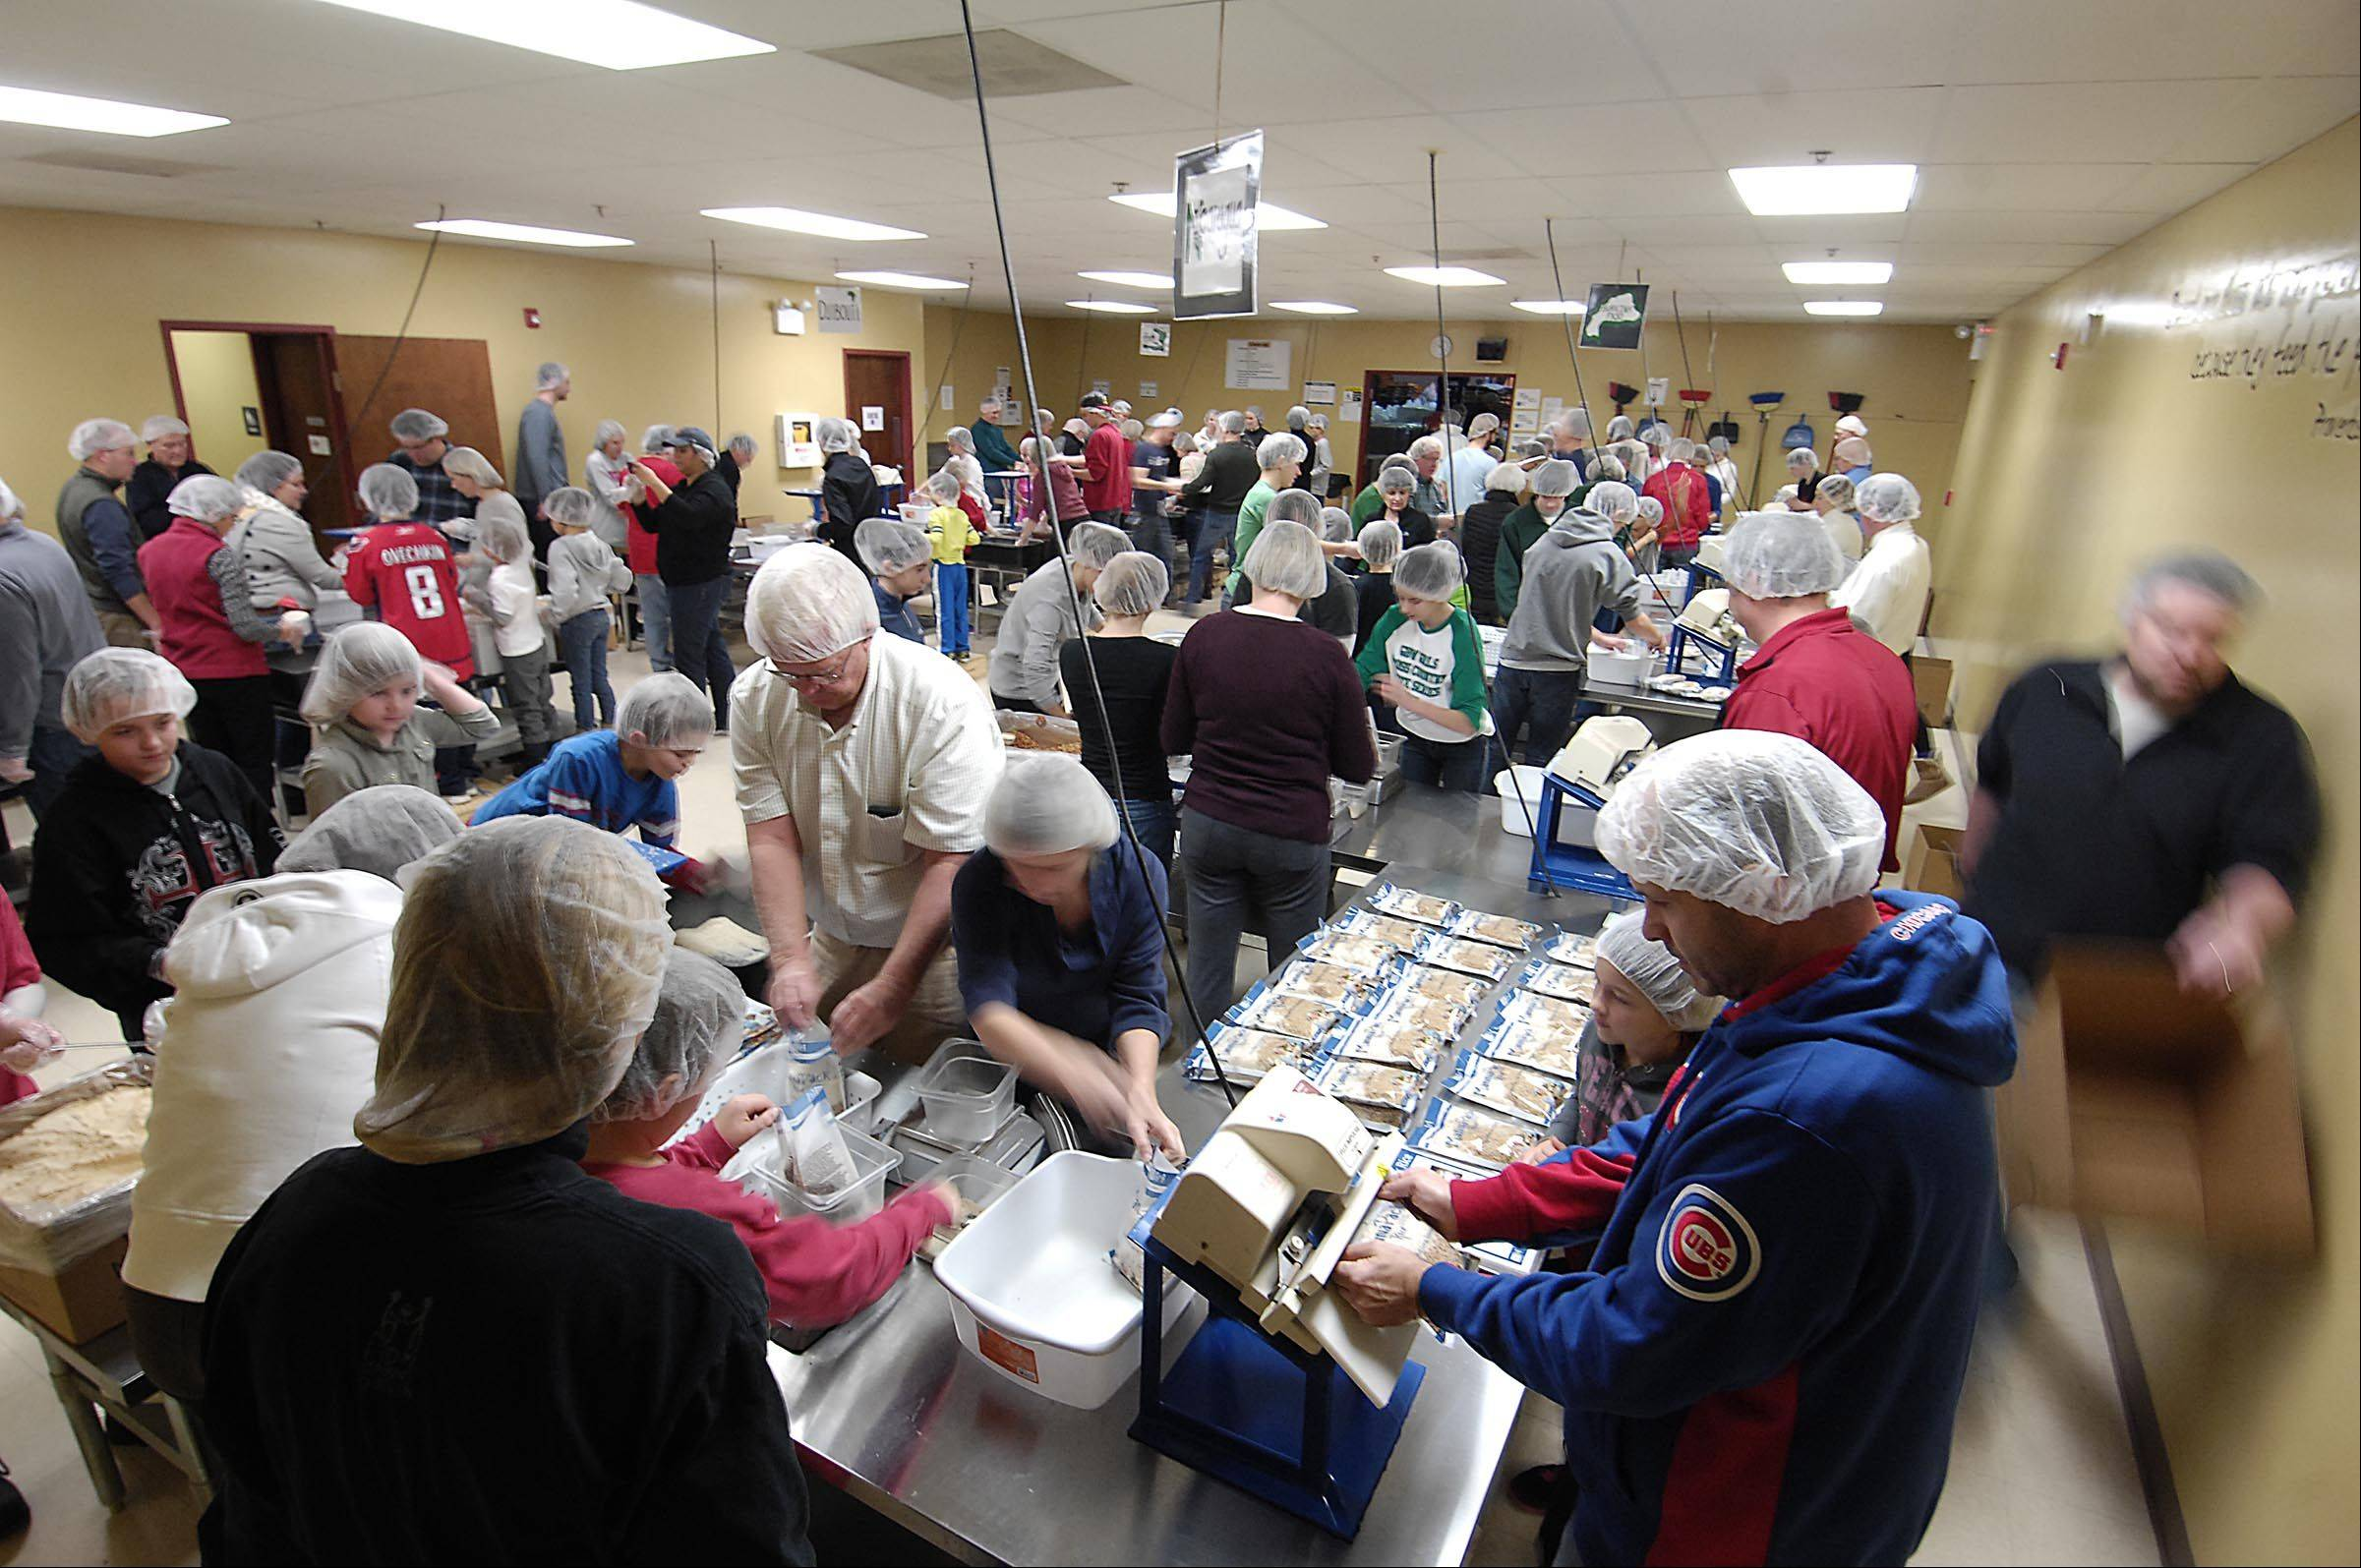 More than 100 people came to the Aurora facility Tuesday to pack specially engineered food packets.